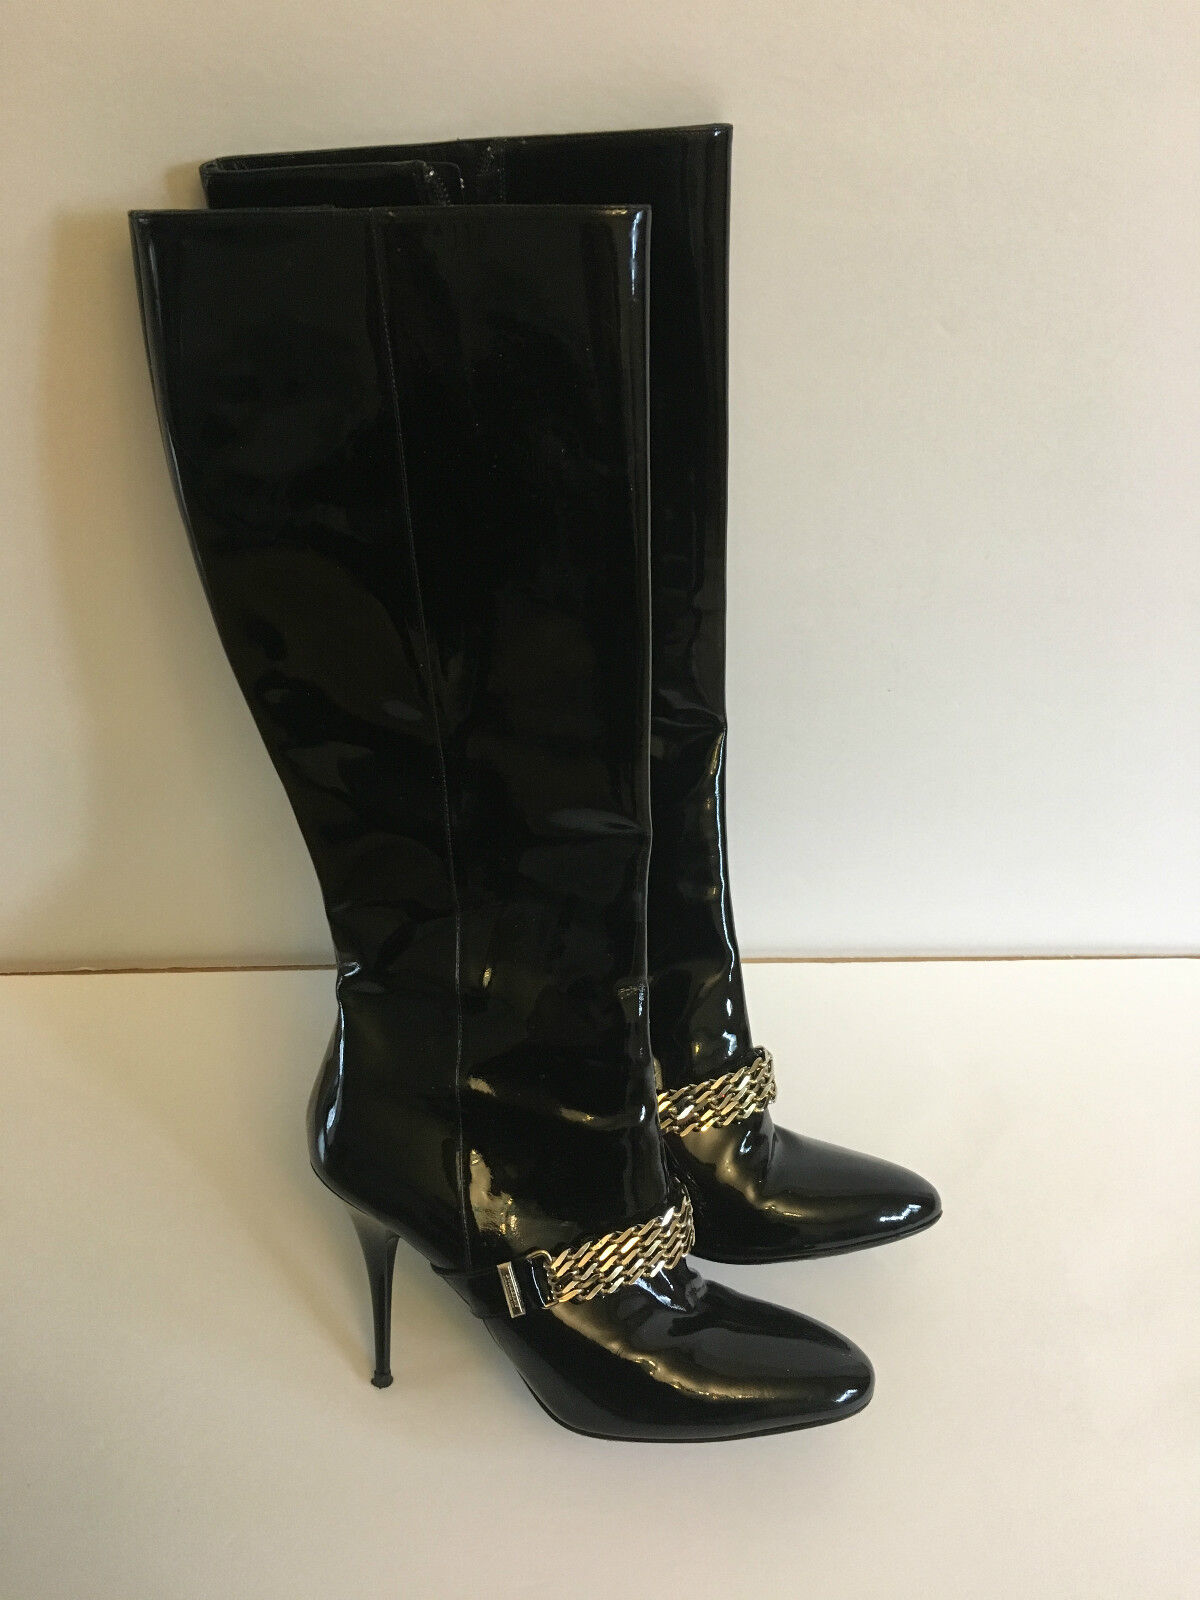 Authentic Burberry High Heel Boots 40(9)